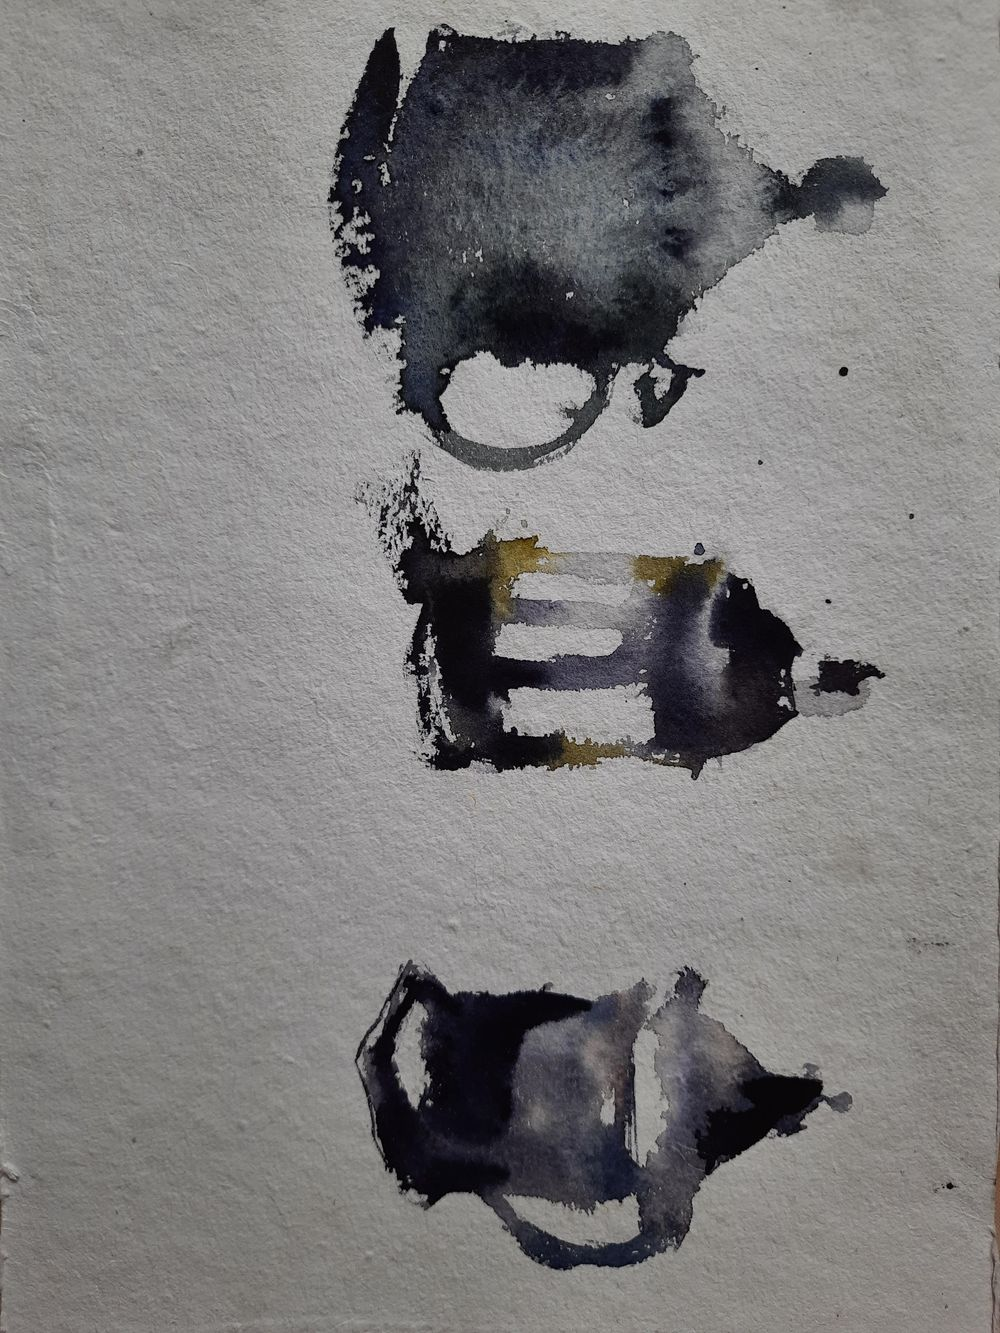 Watercolor workout - image 12 - student project